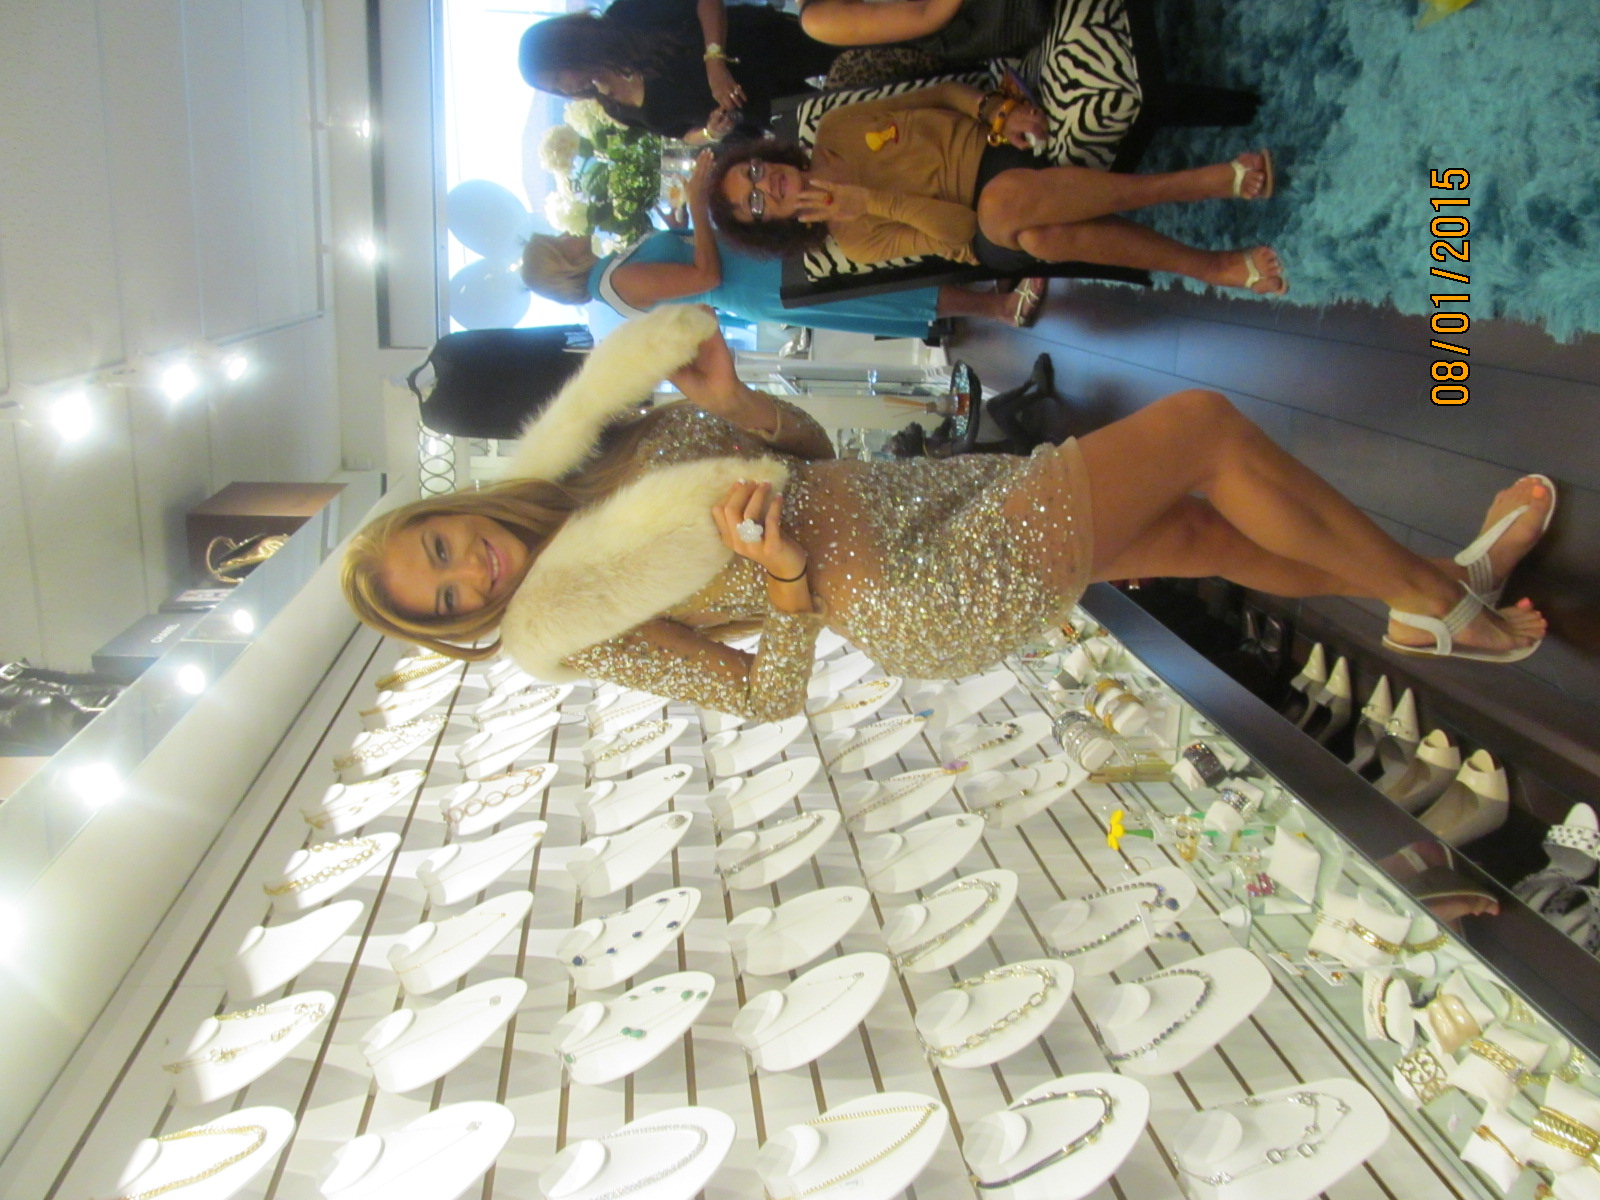 grand opening celebration at exquisite consignment boca raton news